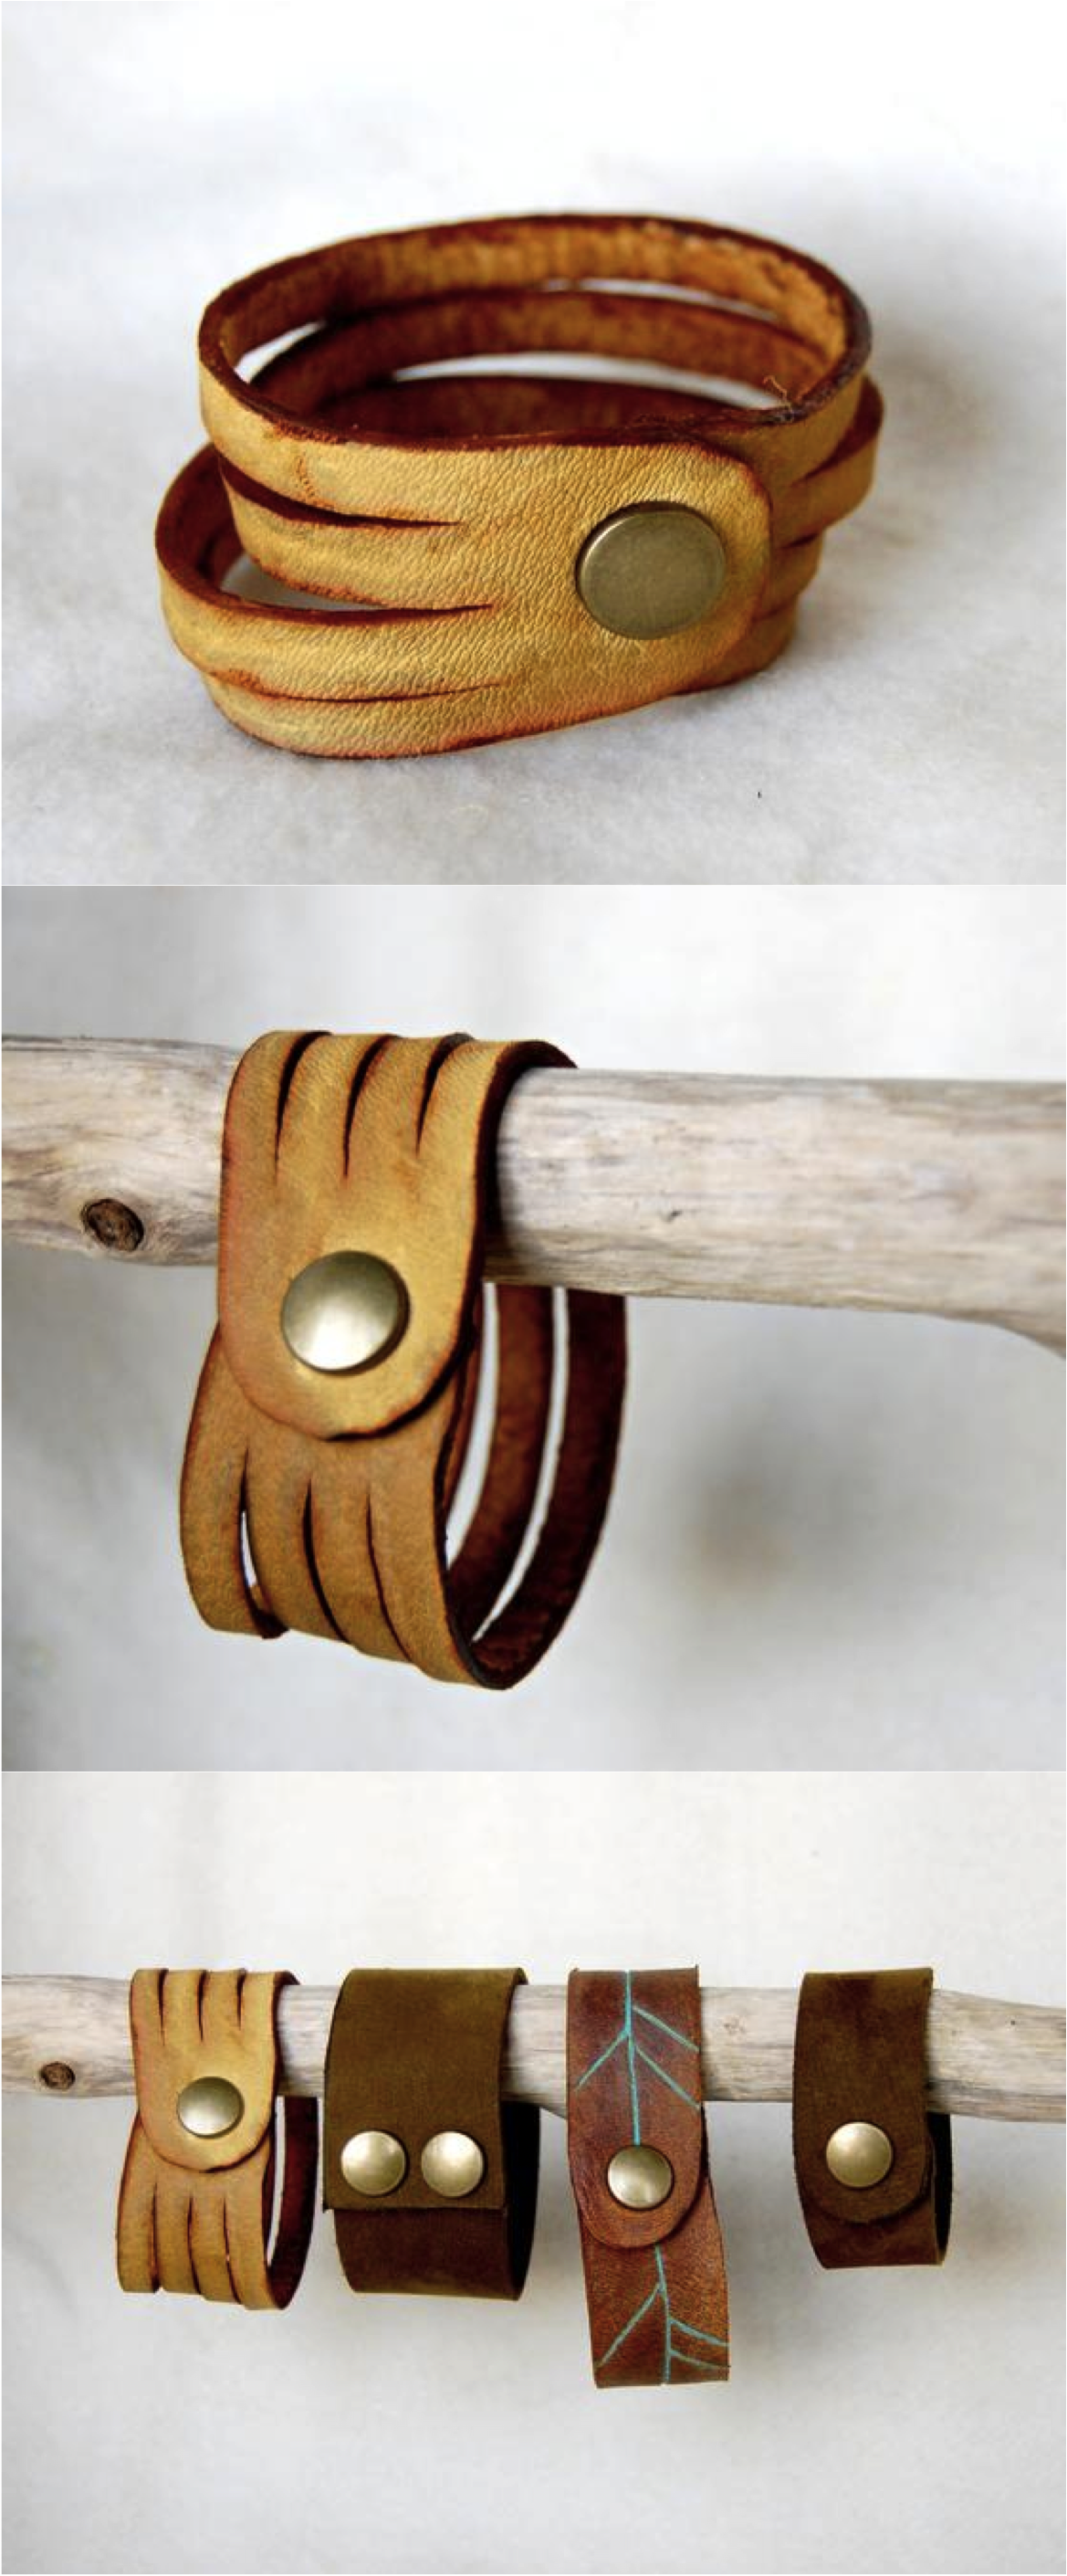 Simple, classic, and refined. This leather cuff bracelet is made with high quality leather and has a snap closure.   Made on Hatch.co by independent designers & professional jewelry makers.